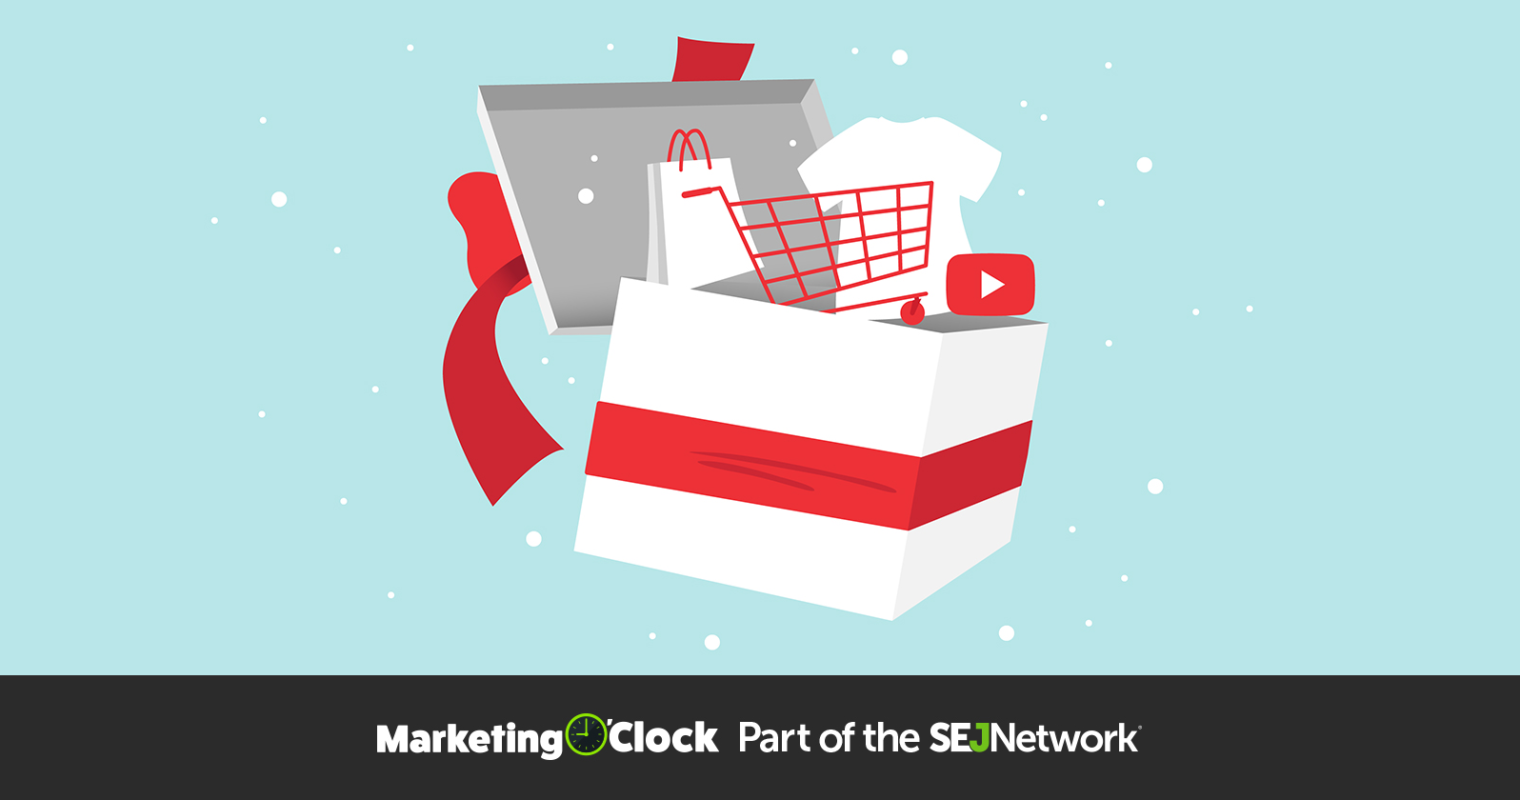 YouTube Shopping Ads, Bing Link Penalties, Influencer Endorsements & More News [PODCAST]